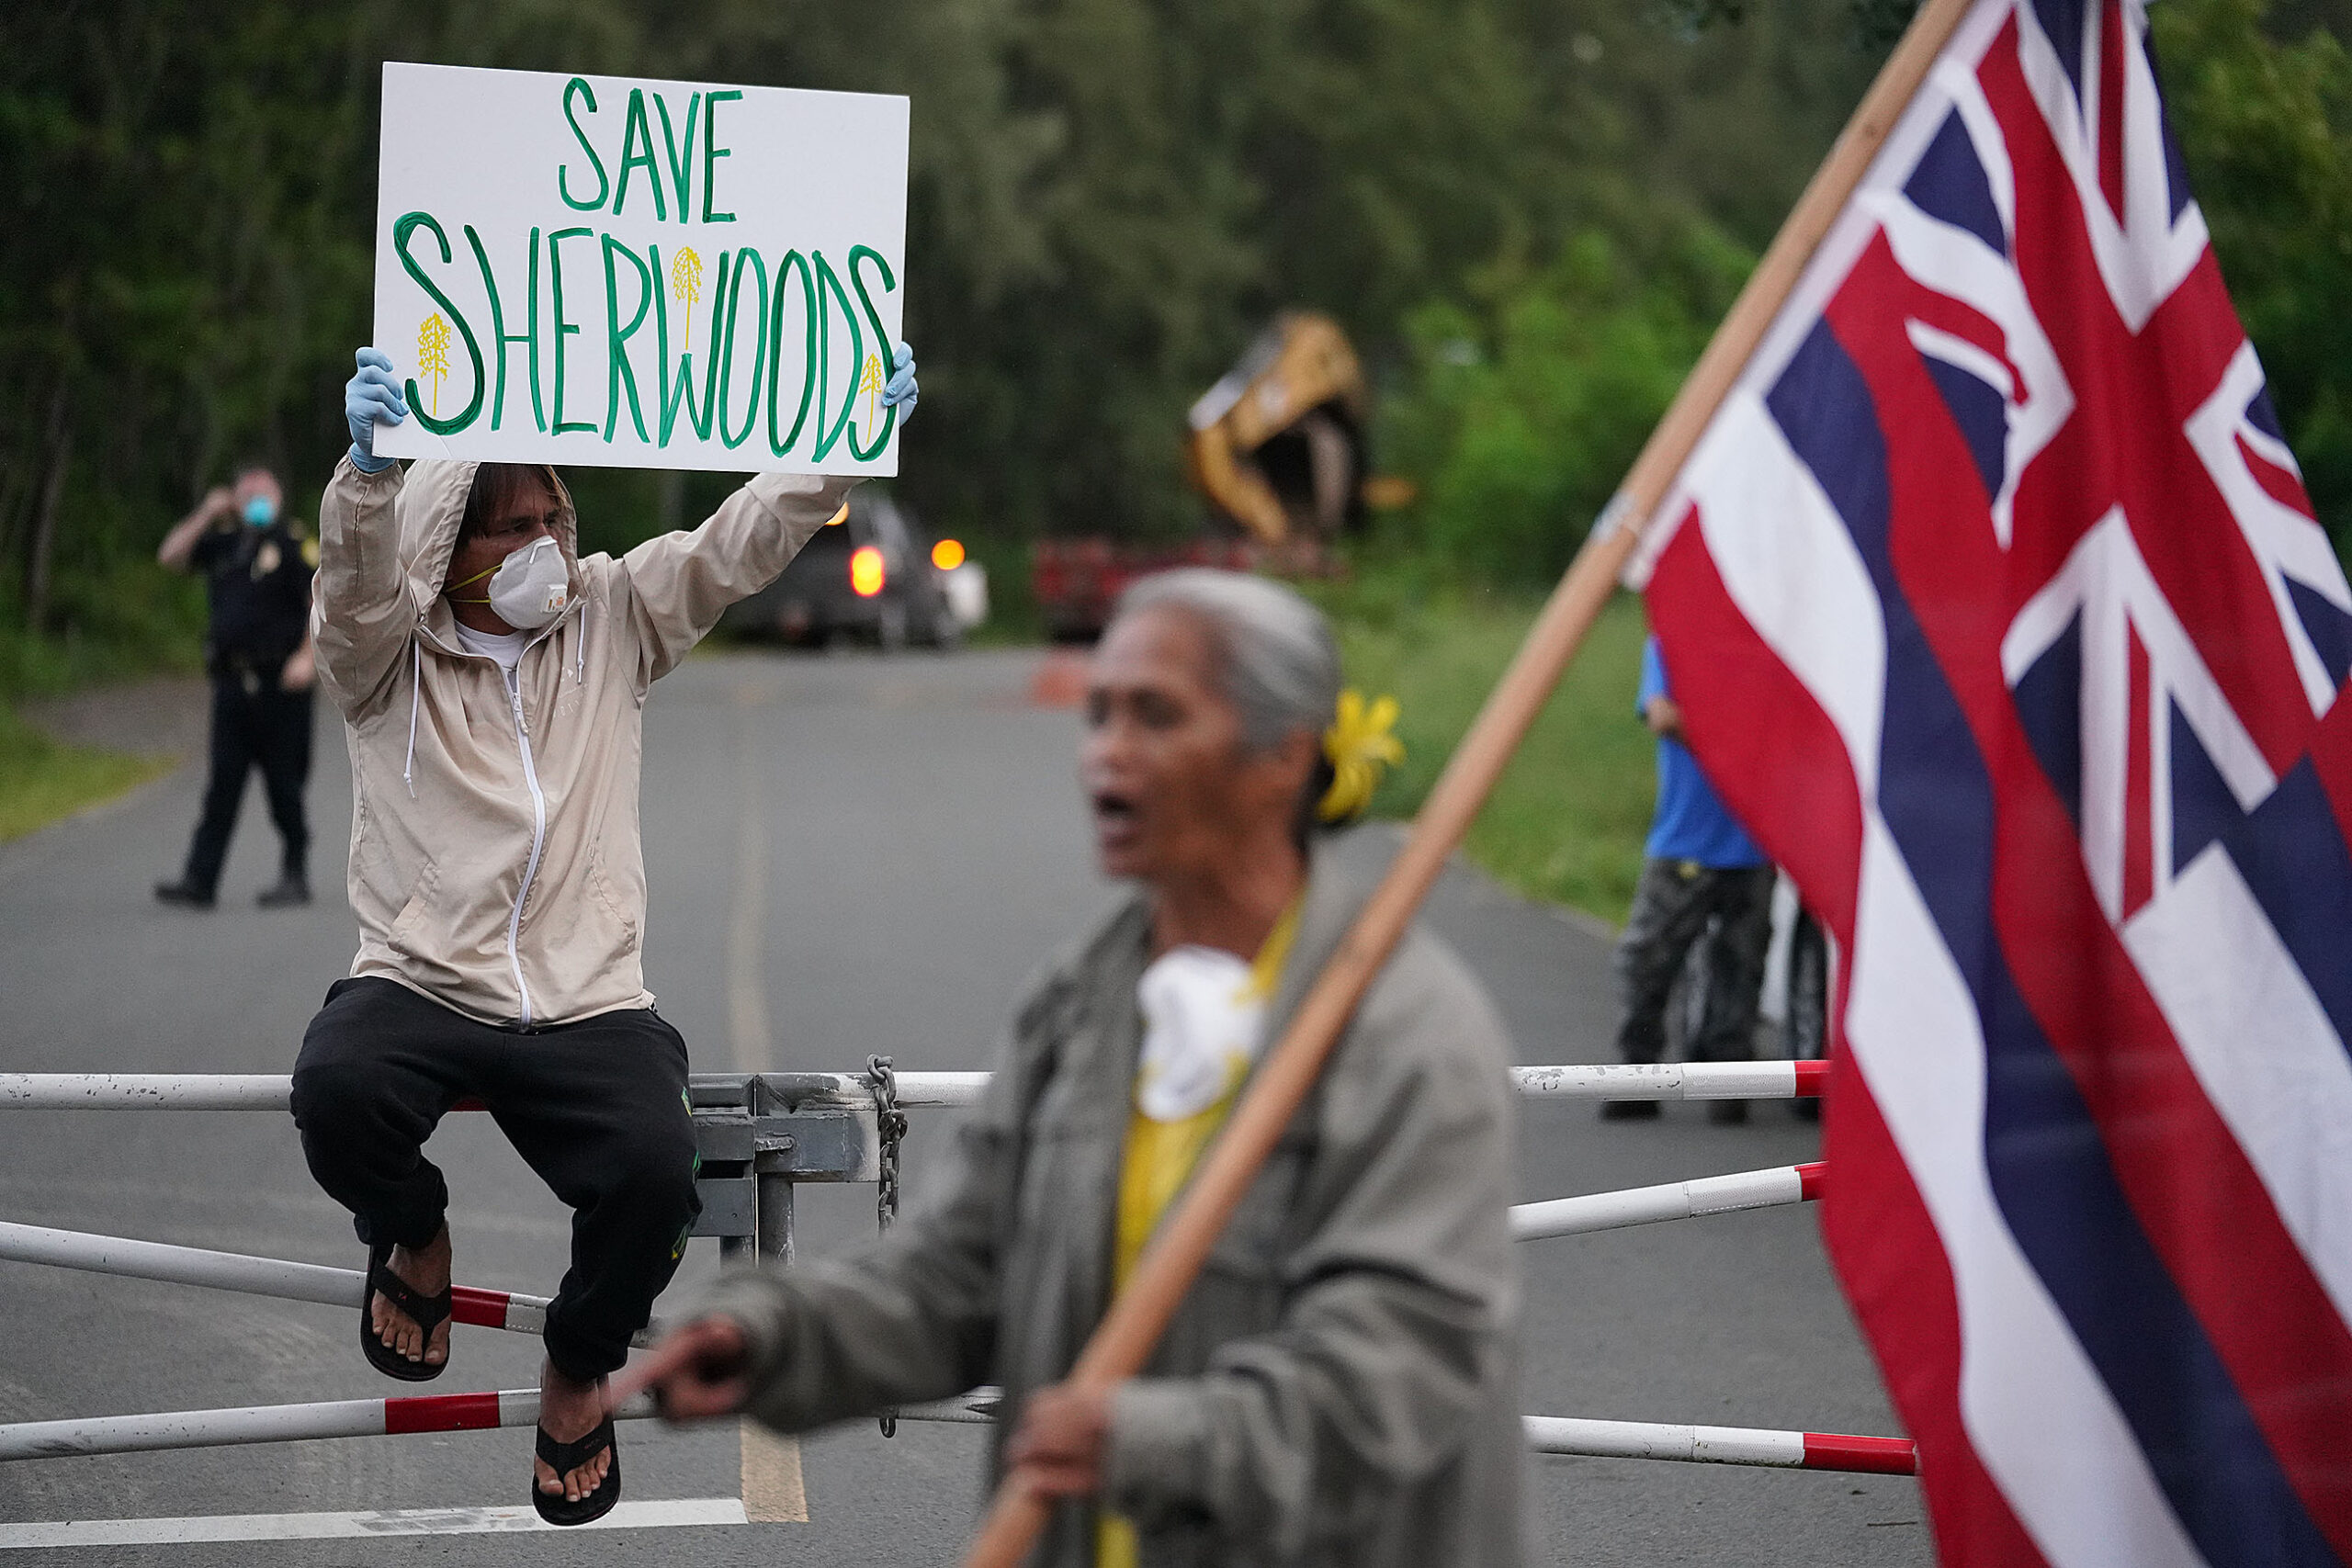 <p>In the midst of a global pandemic, Kalokahi Kauka and others protested in April after a large truck with heavy machinery drove into the area known as Sherwood Forest in Waimanalo. Residents demanded the city stop the bulldozing for a proposed park.</p>